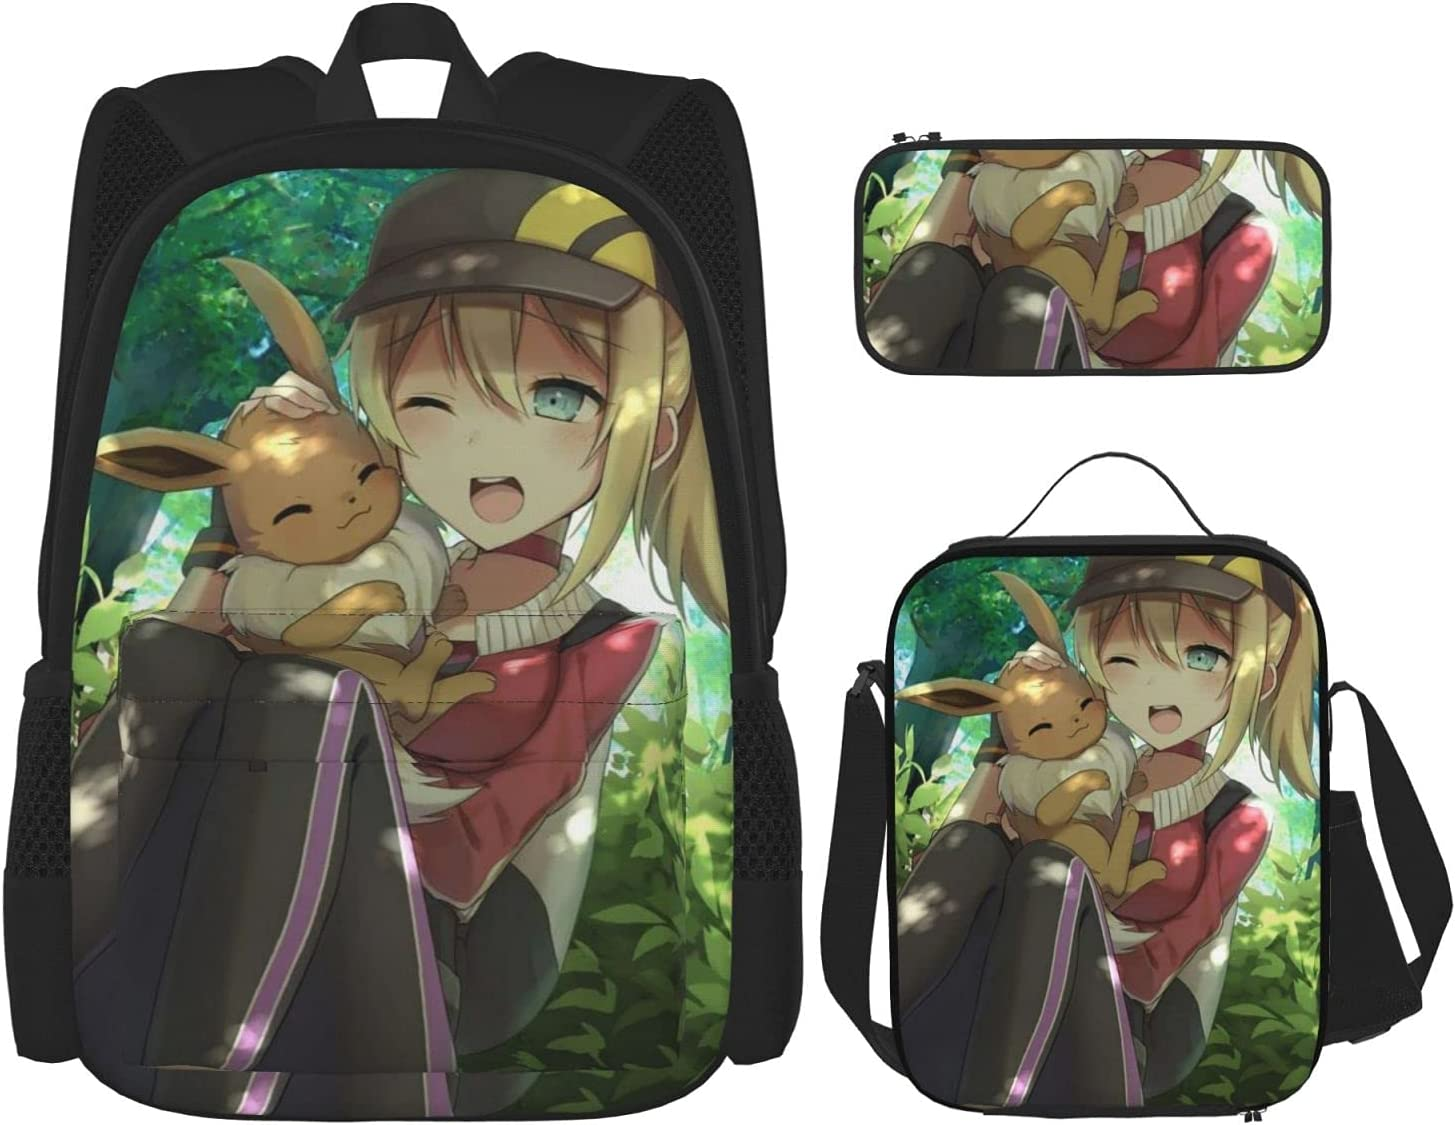 Pokemon Backpack Adult Super sale period limited Children'S School Bag Complete Free Shipping Cartoon Print Anime